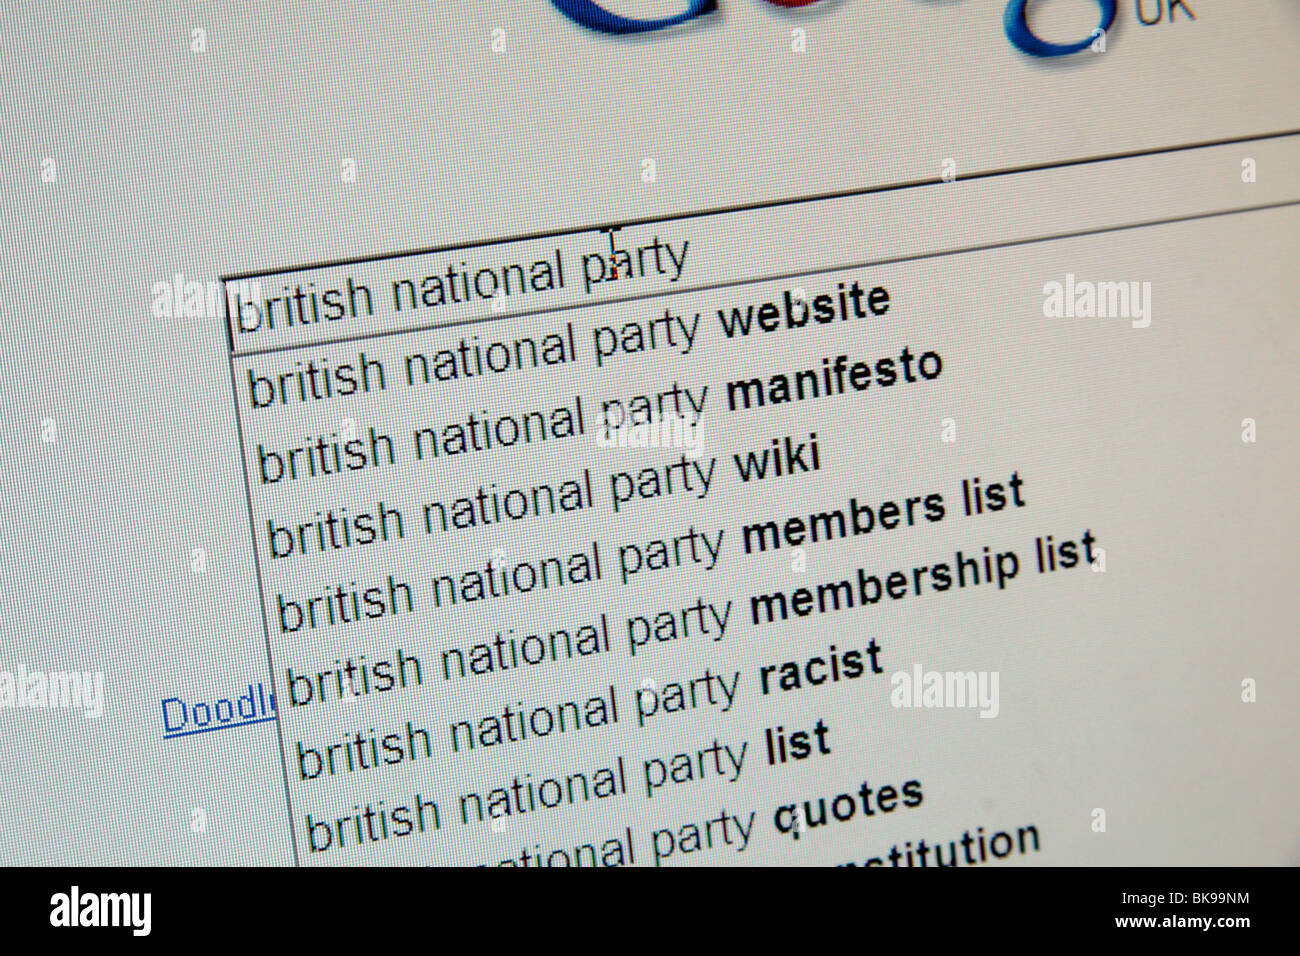 British National Party Stock Photos & British National Party Stock ...